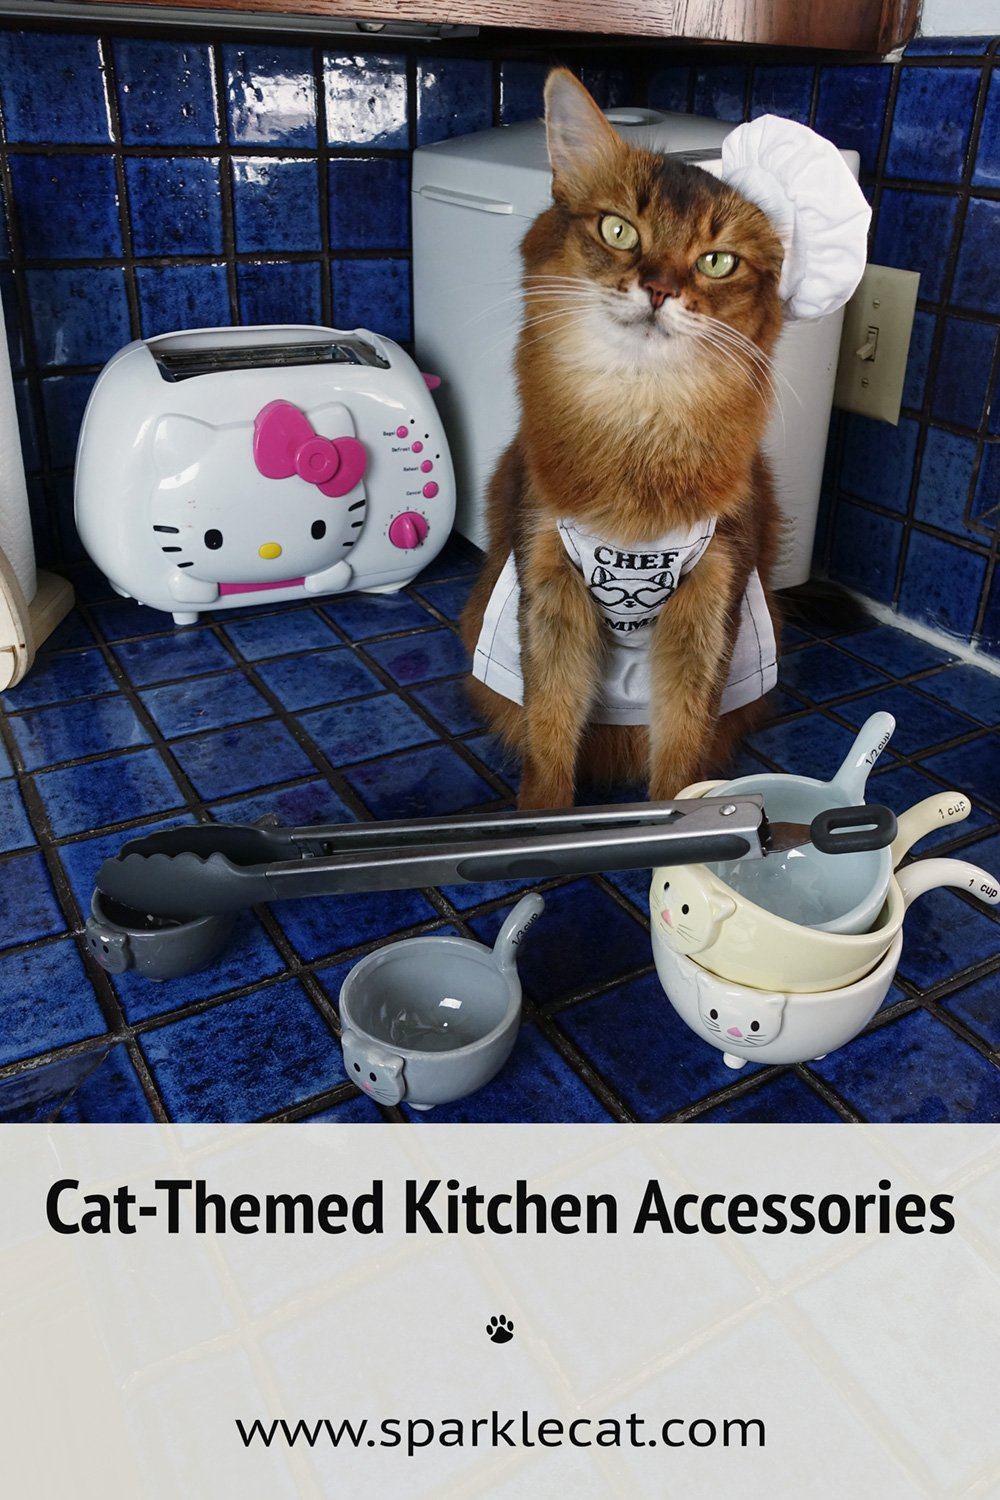 Cat Themed Kitchen Accessories for the Perfect Kitty Kitchen!